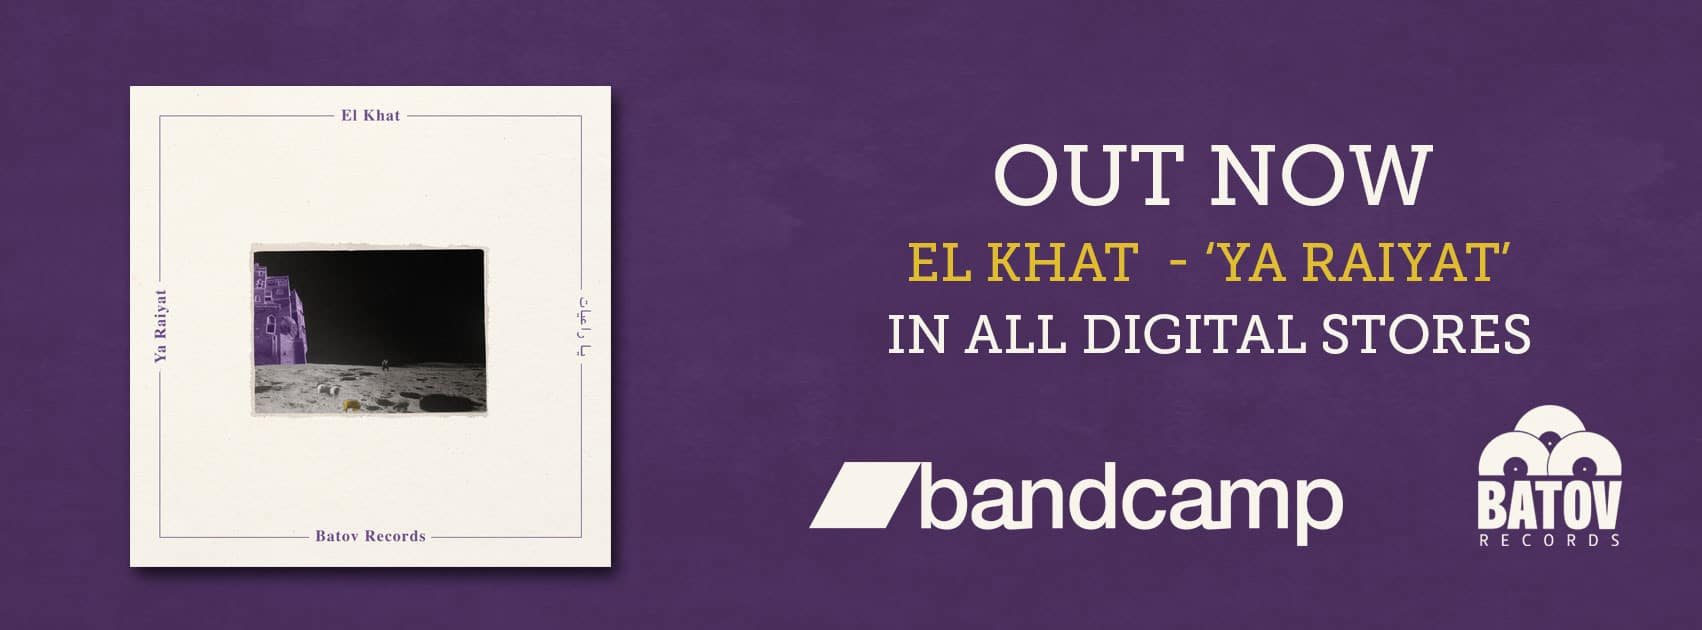 El Khat Ya Raiyat Out Now